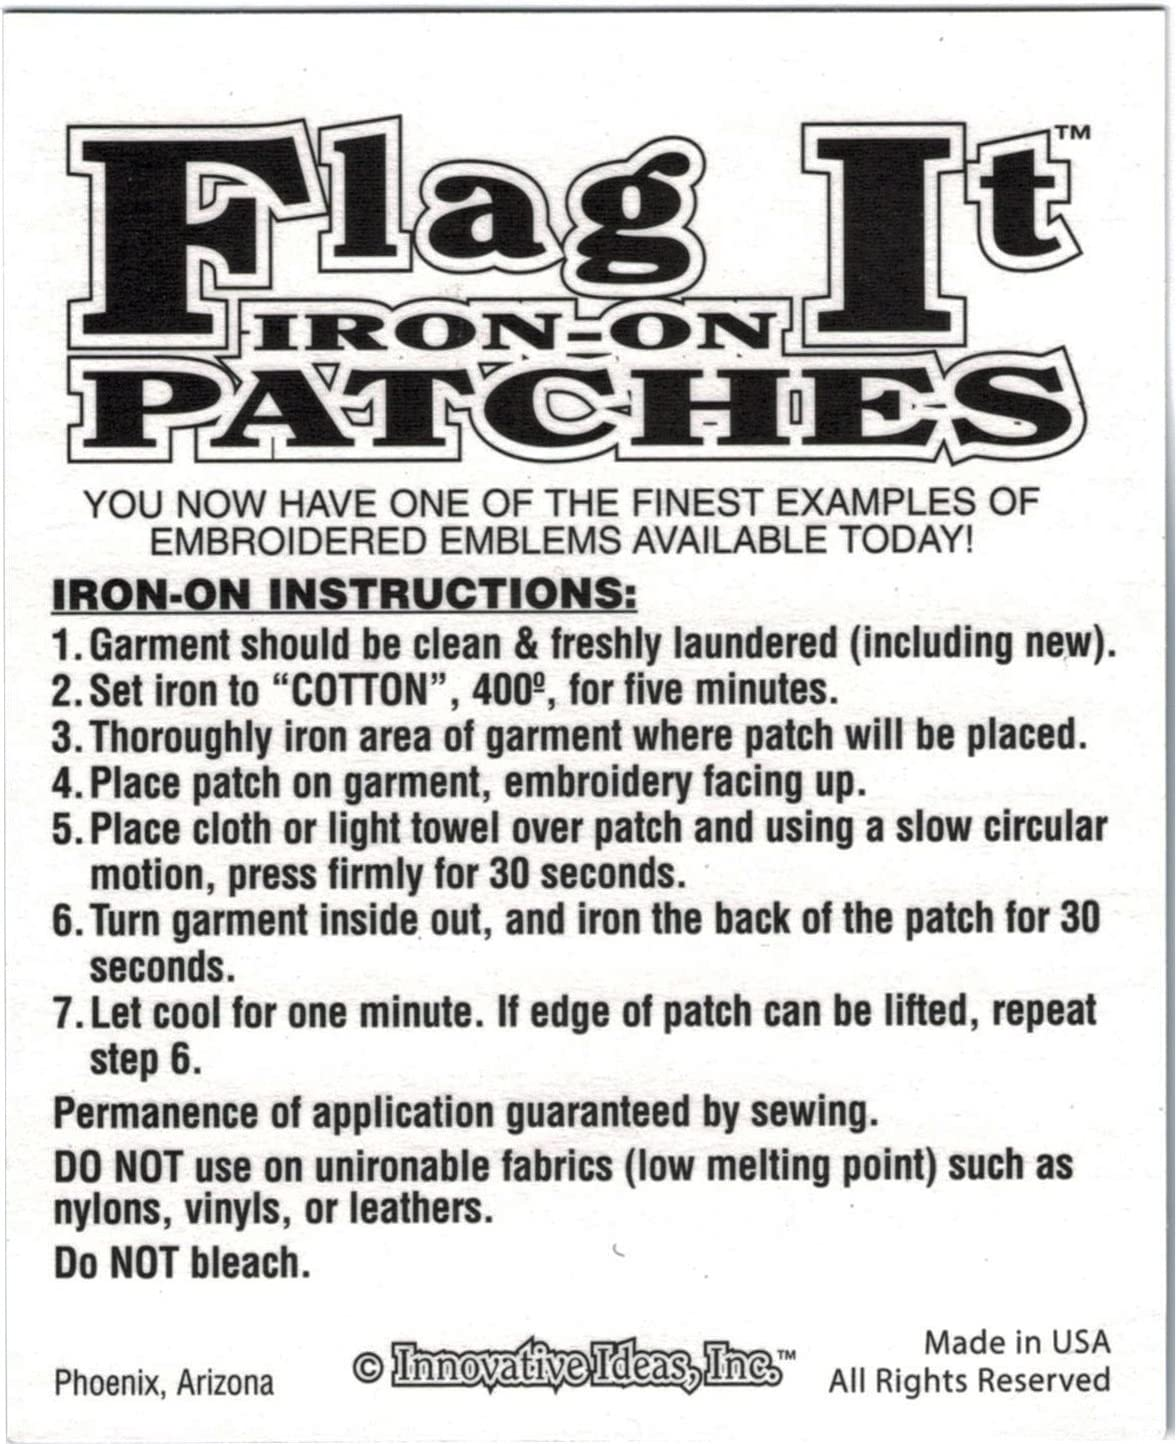 The Culpeper Patch parche 3.5 x 2.25 Inches Superior Quality Iron-On // Saw-On Embroidered Patch parche by: Flag-It The Most Trusted Brand Made in the USA Each Patch parche is carded /& packaged individually in a professional retail package